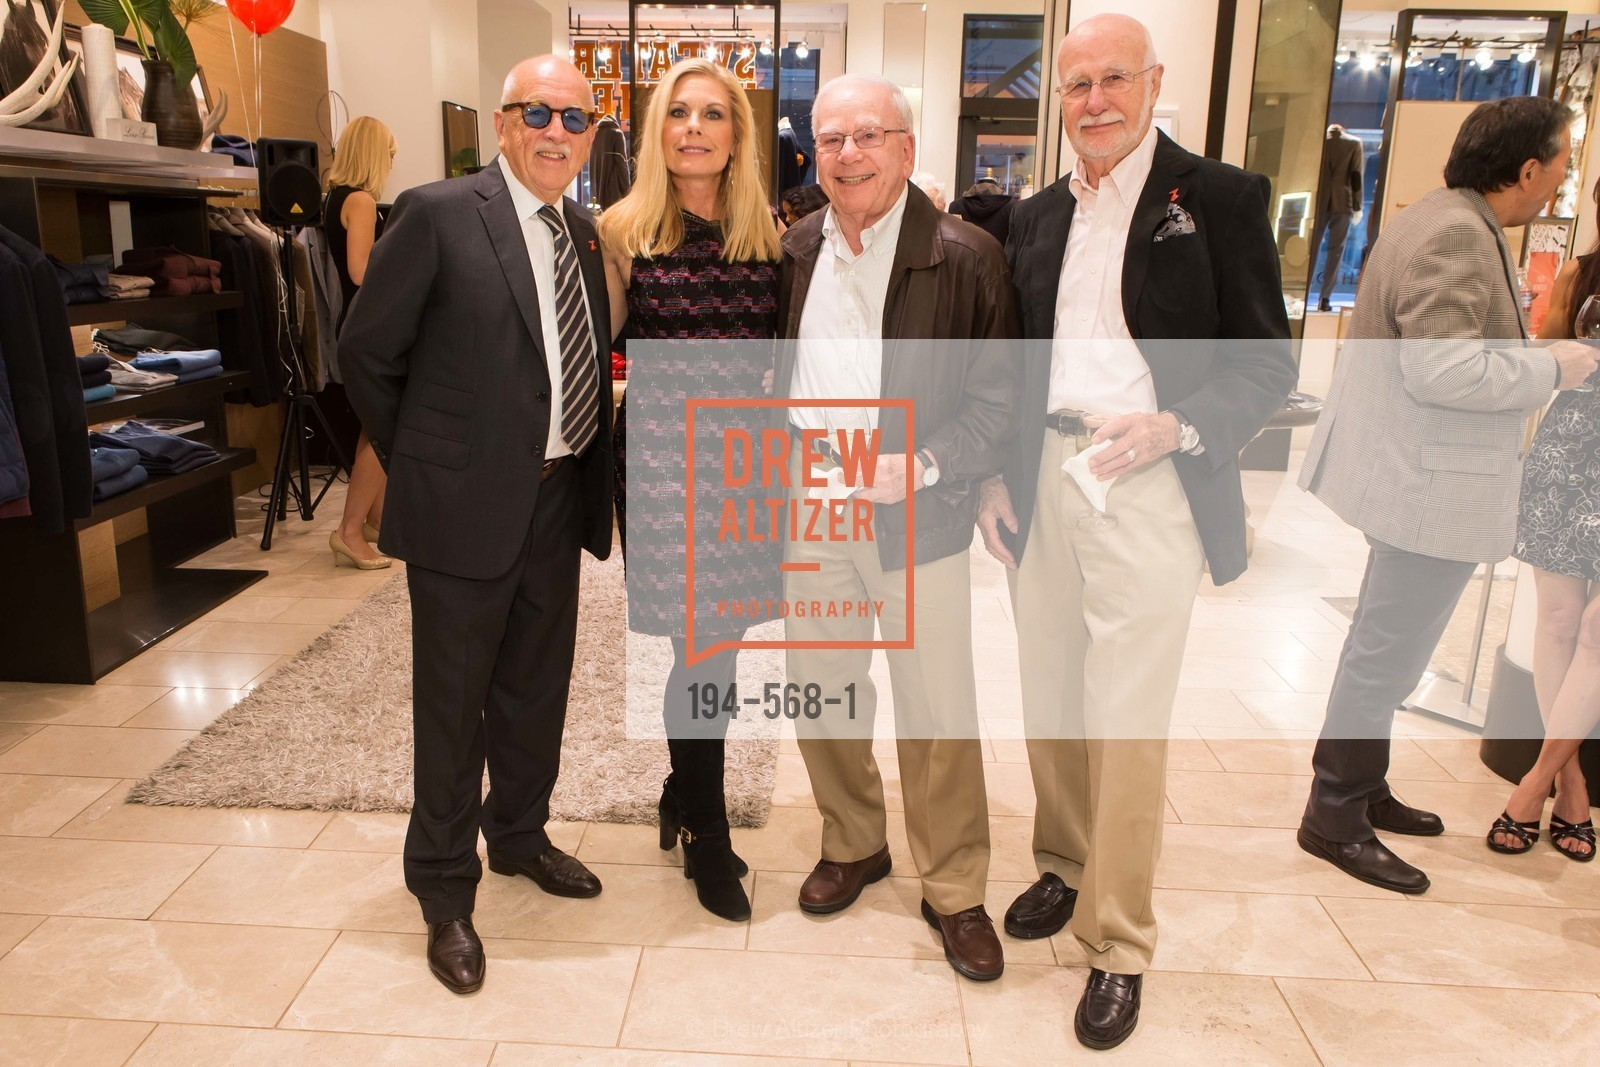 Wilkes Bashford, Jacqueline Jacoby, Tom Roghgiesser, George Lucas, SOTHEBY'S  Hosts a Private Viewing of Highlights from the Collection of MRS. PAUL MELLON, US, September 17th, 2014,Drew Altizer, Drew Altizer Photography, full-service agency, private events, San Francisco photographer, photographer california